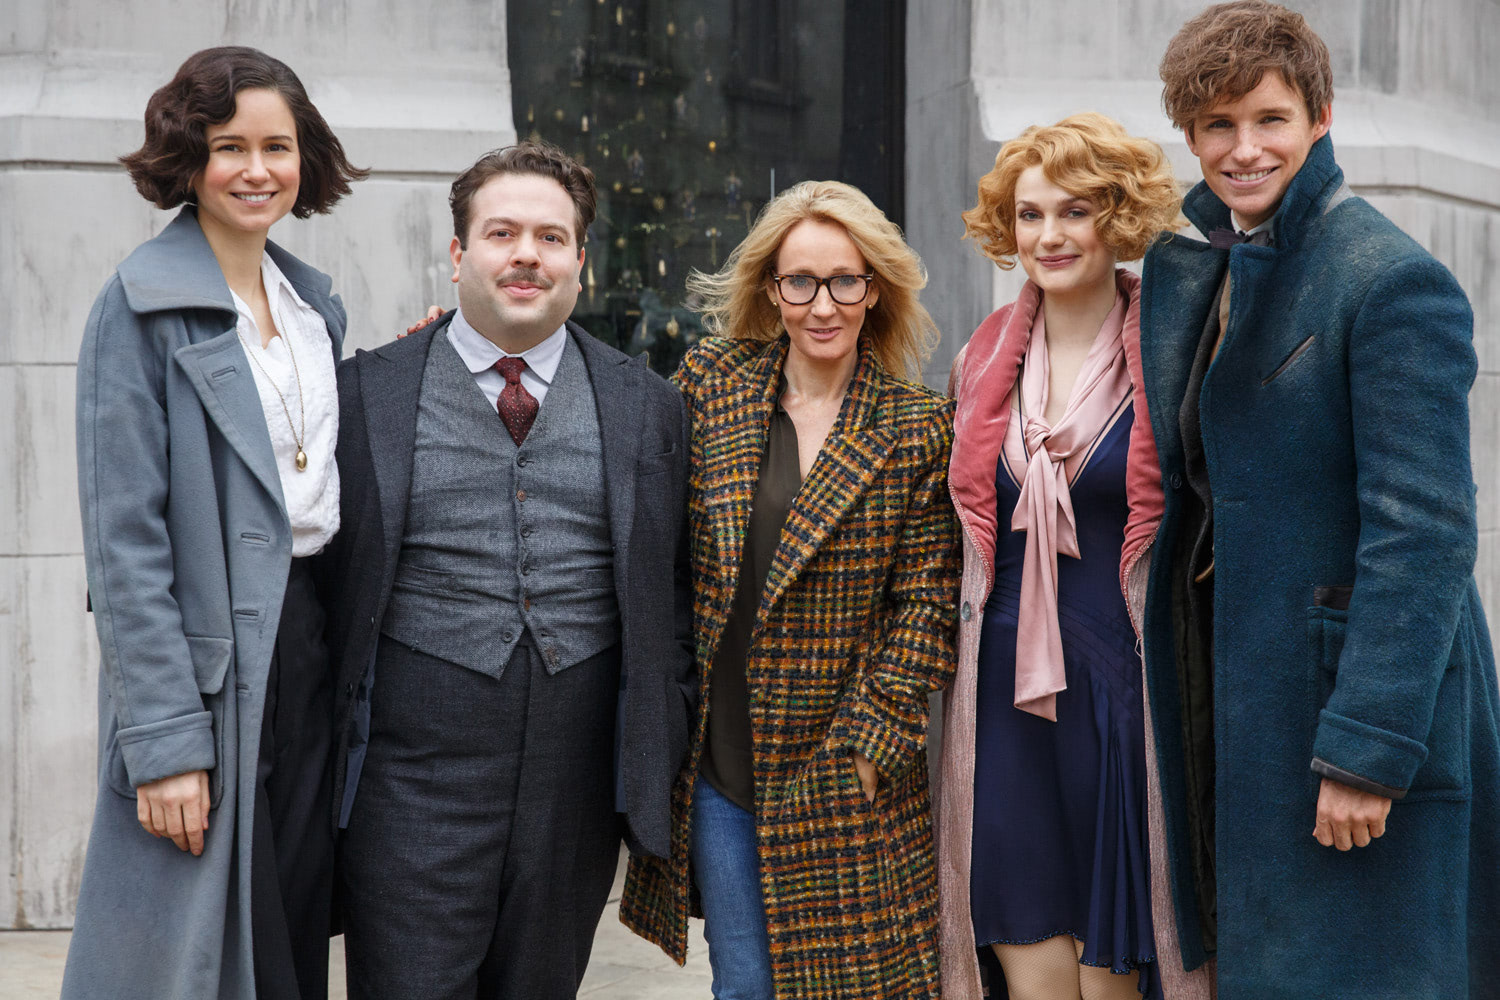 J.K. Rowling and the 'Fantastic Beasts' cast